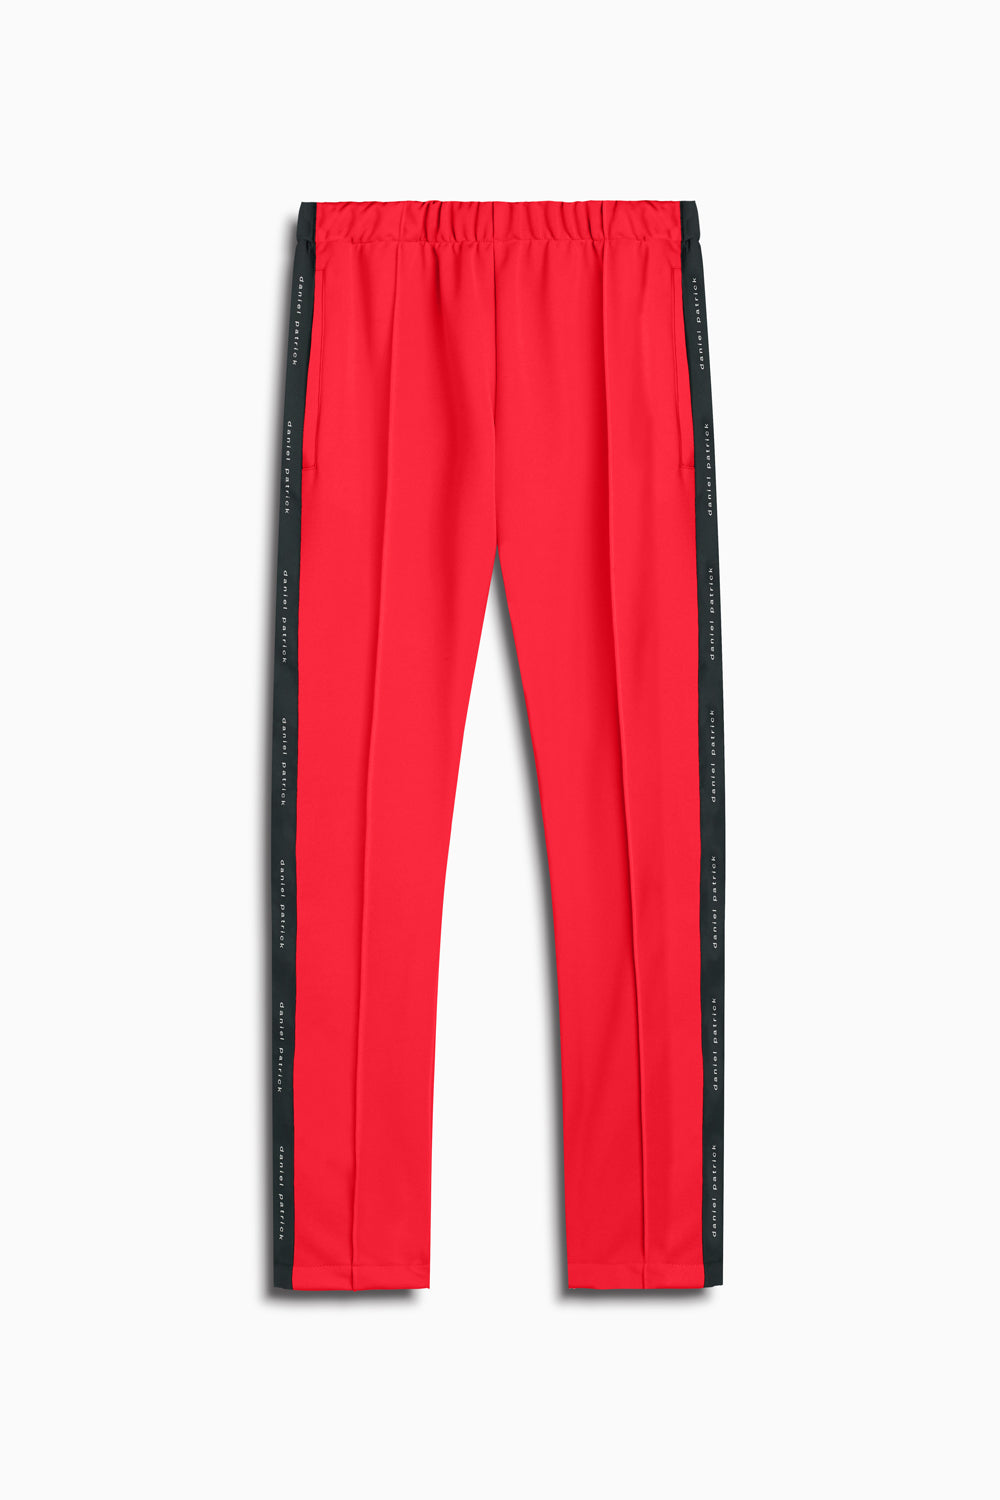 heroine track pant in red/black by daniel patrick